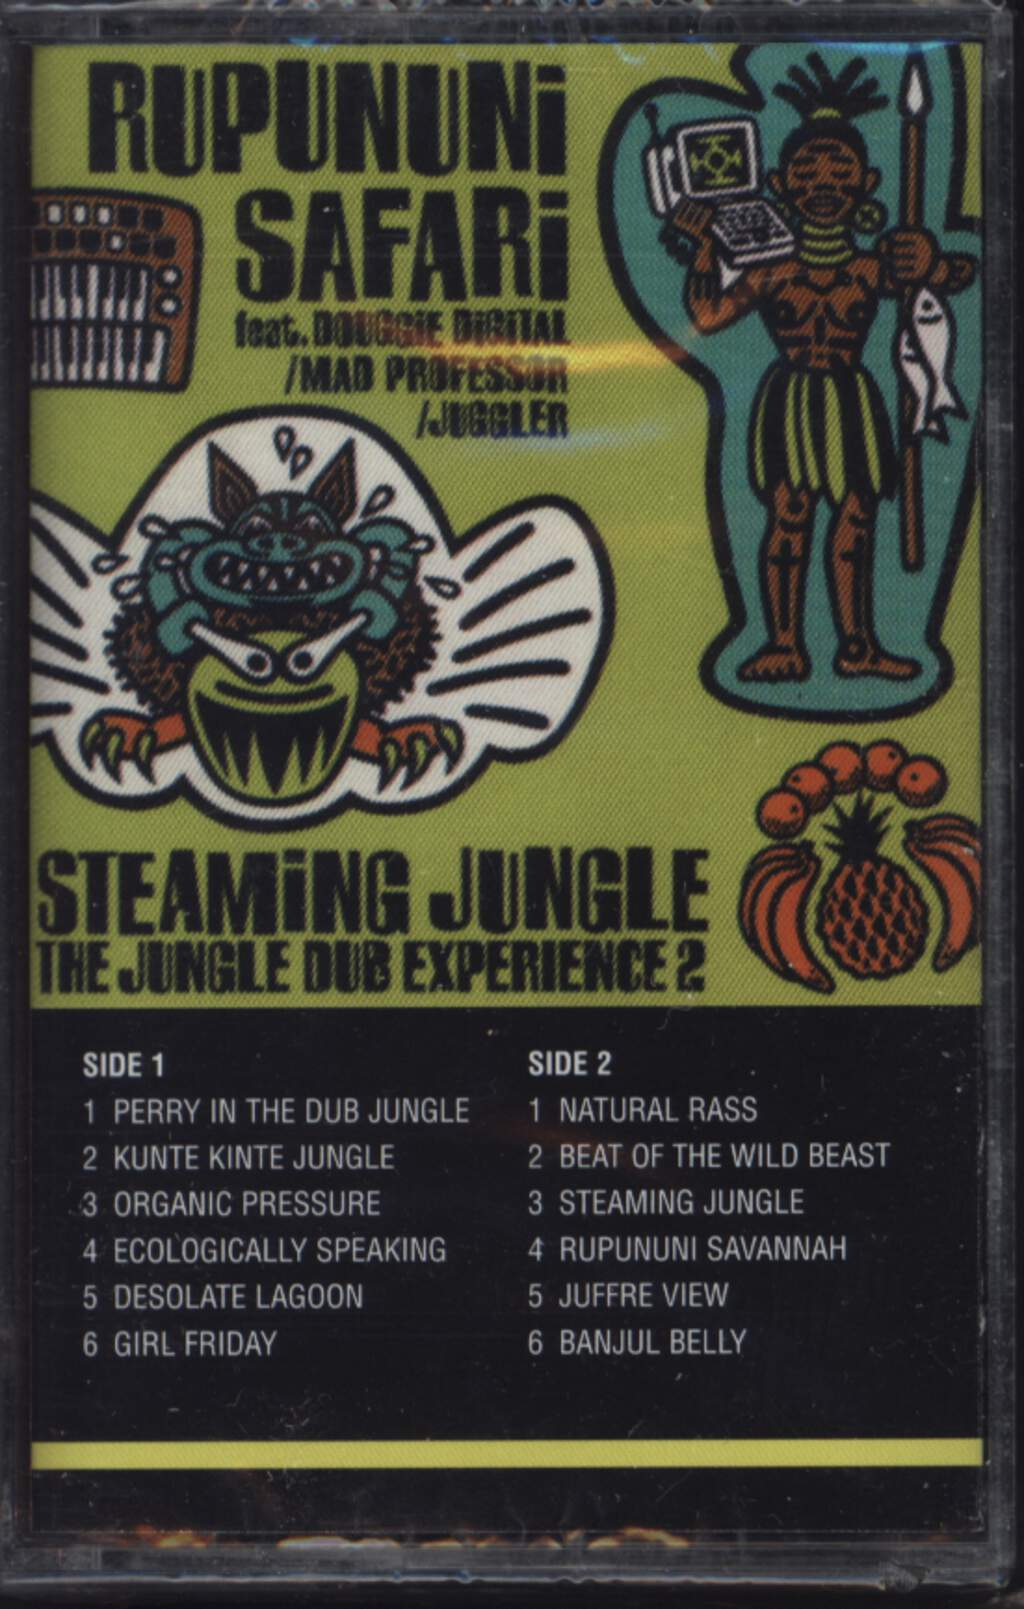 Rupununi Safari: Steaming Jungle (The Jungle Dub Experience 2), Compact Cassette